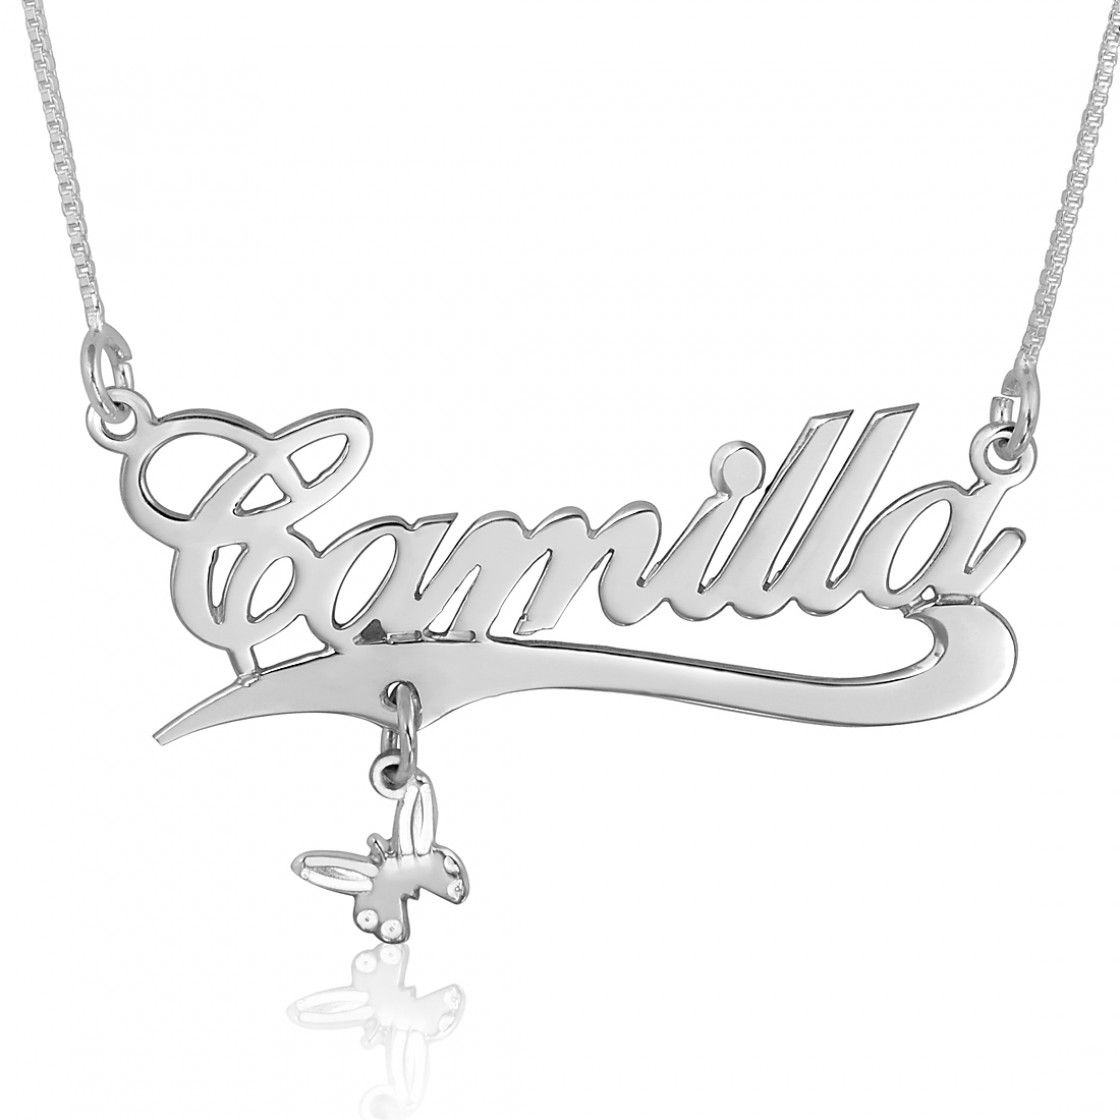 Shop our best sellers like this allegro butterfly name necklace with